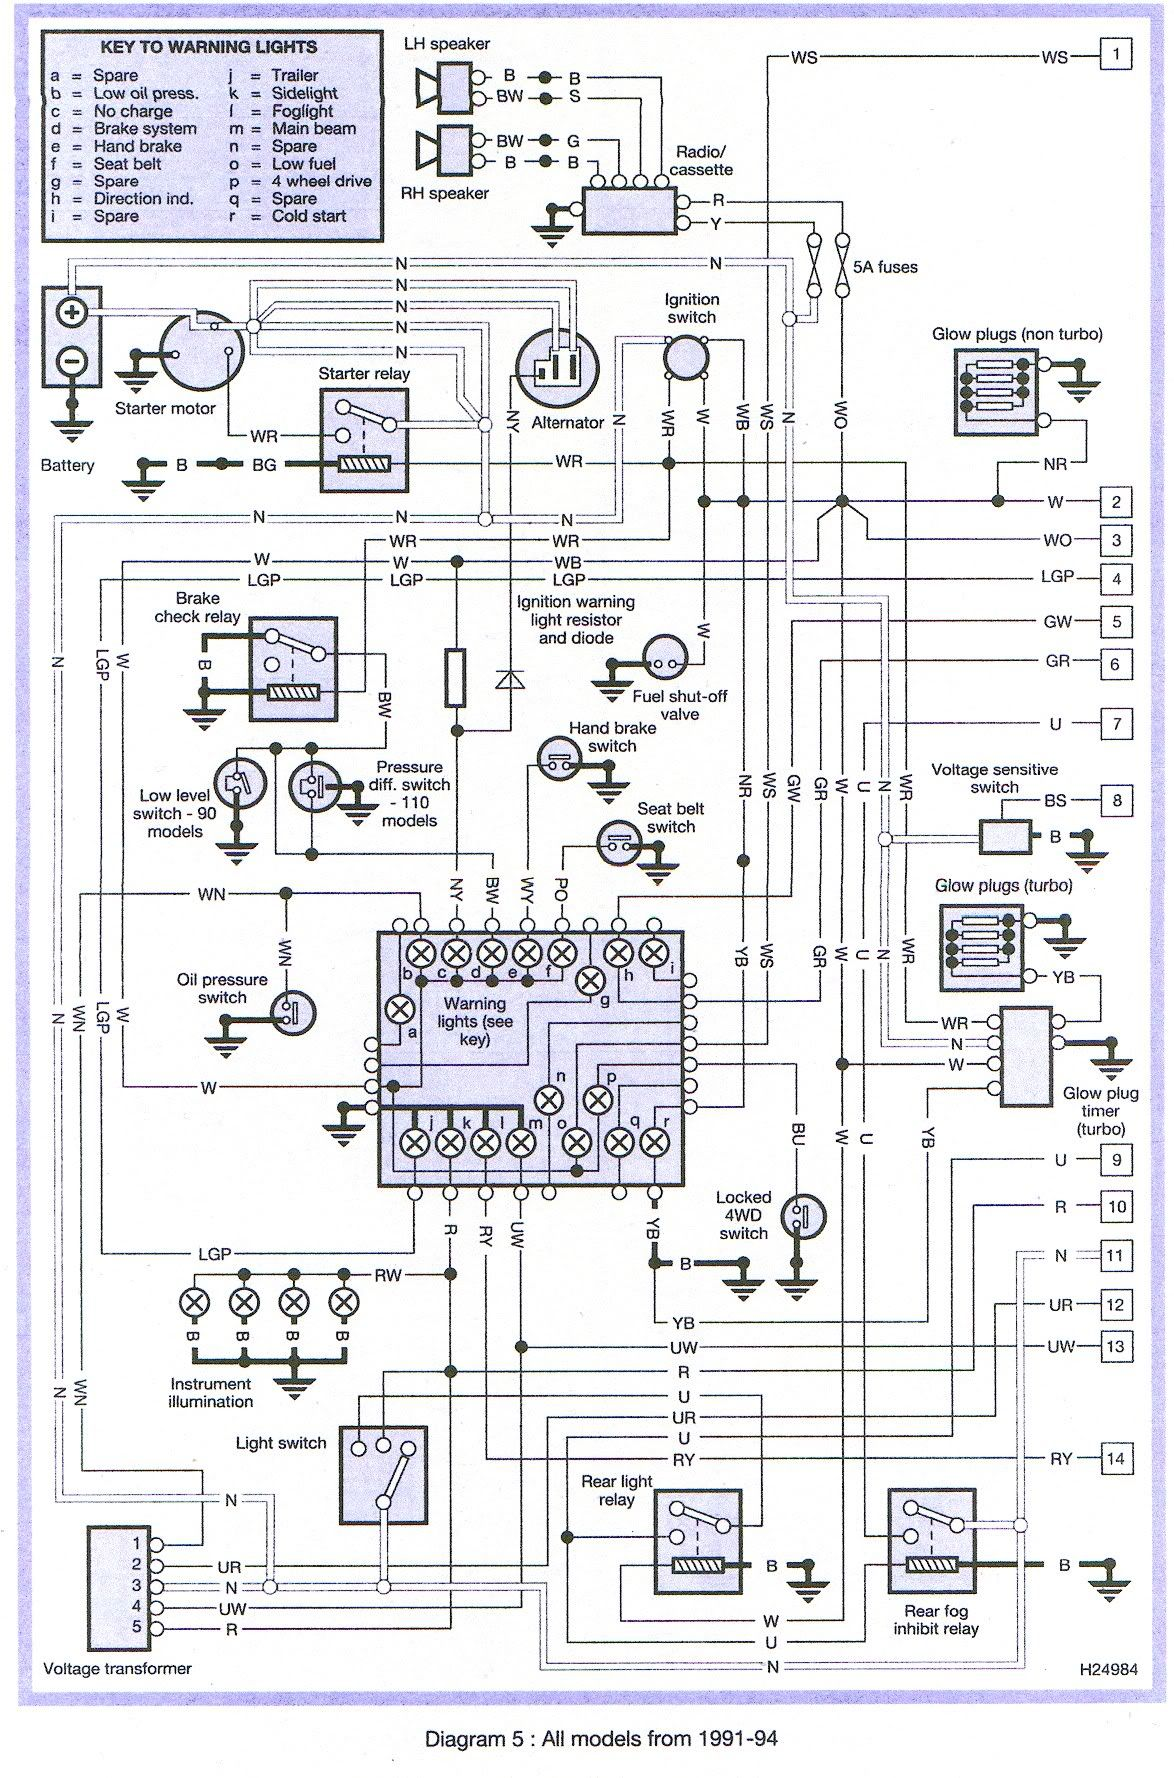 land rover discovery wiring diagram manual repair with engineland rover discovery wiring diagram manual repair with [ 1174 x 1778 Pixel ]